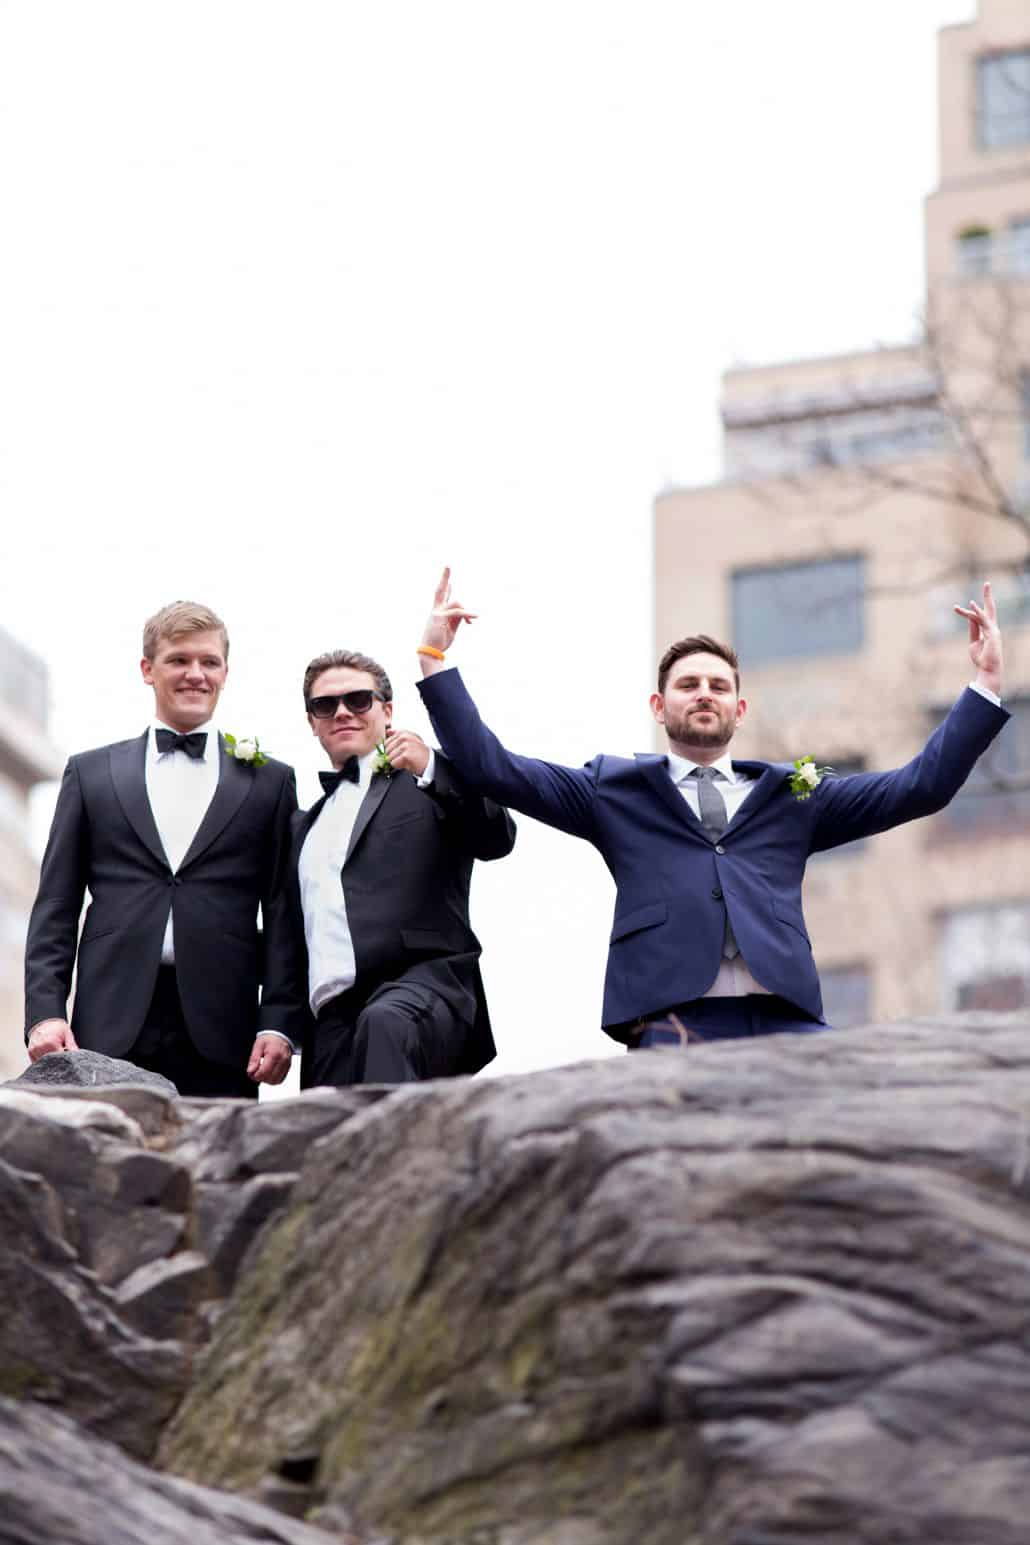 Groom and groomsmen goof around in Central Park Wedding Photo. New York Wedding photographer. Navy suit, black tux.